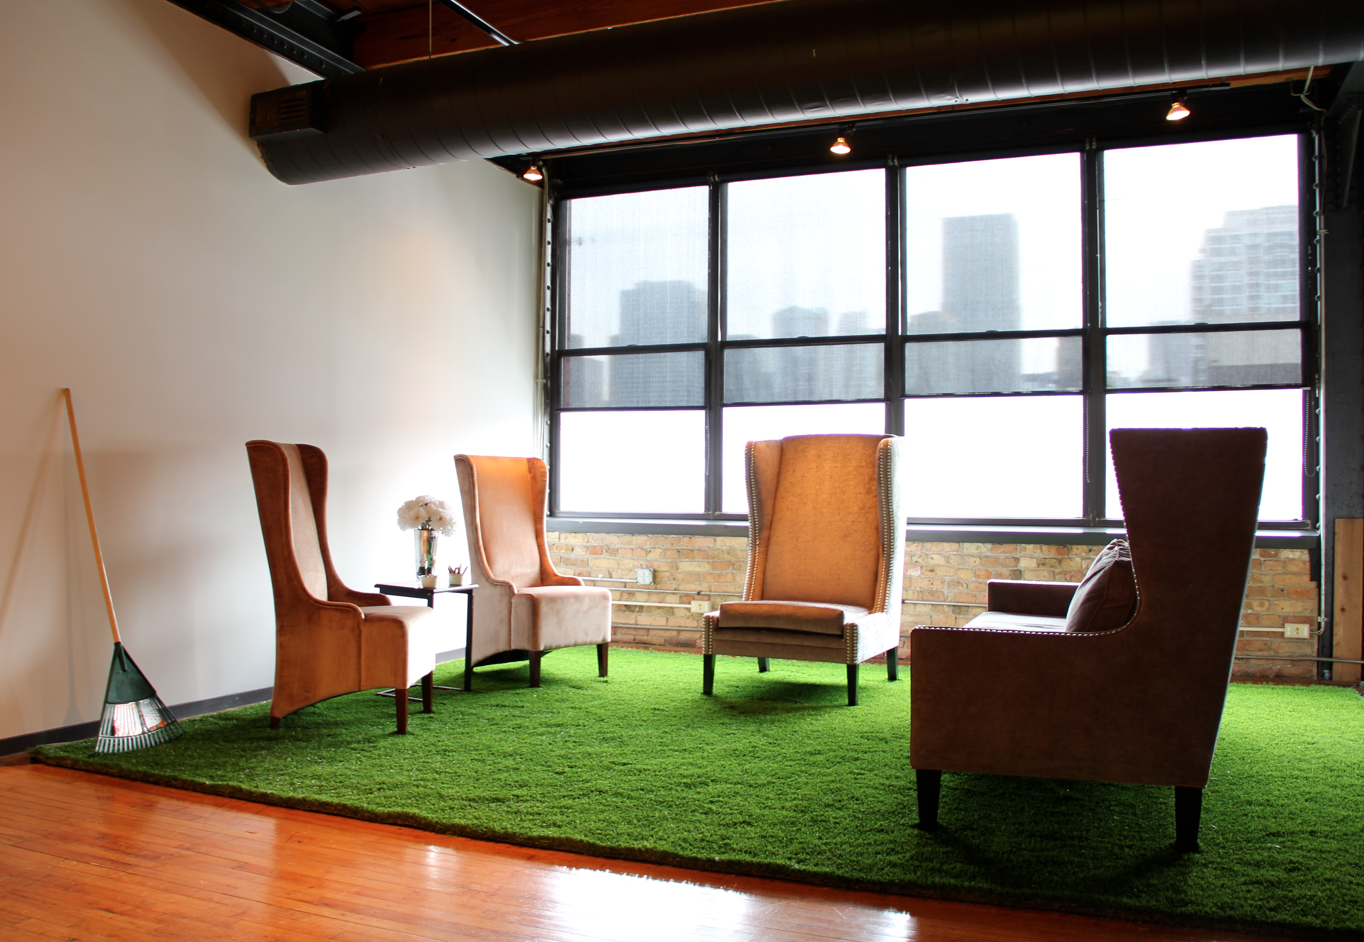 Astroturf As A Rug And Few Well Places Chairs Can Really Bring Retro Grunge